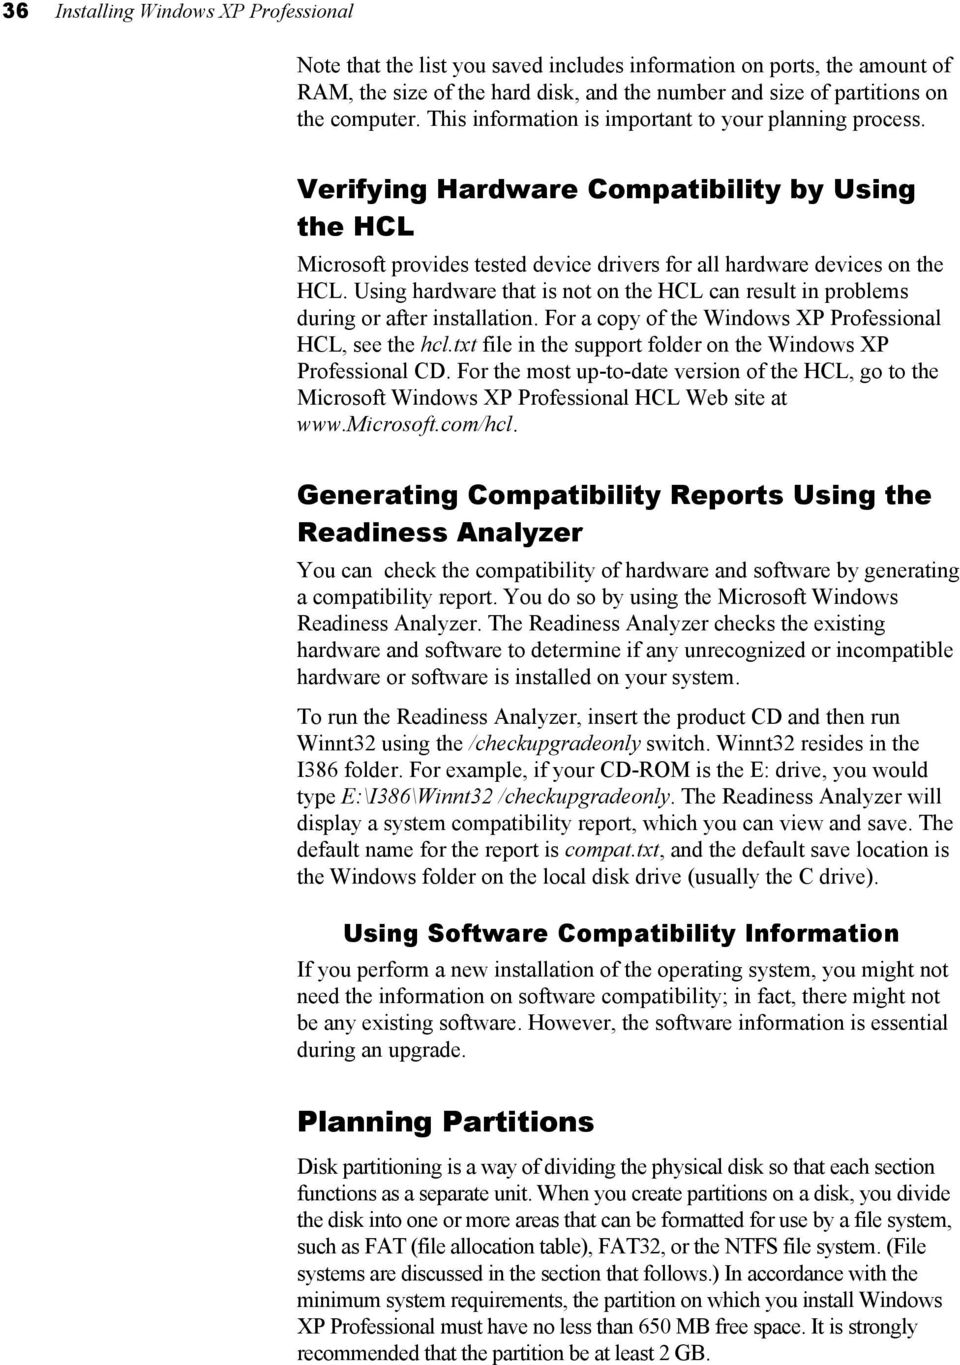 Using hardware that is not on the HCL can result in problems during or after installation. For a copy of the Windows XP Professional HCL, see the hcl.